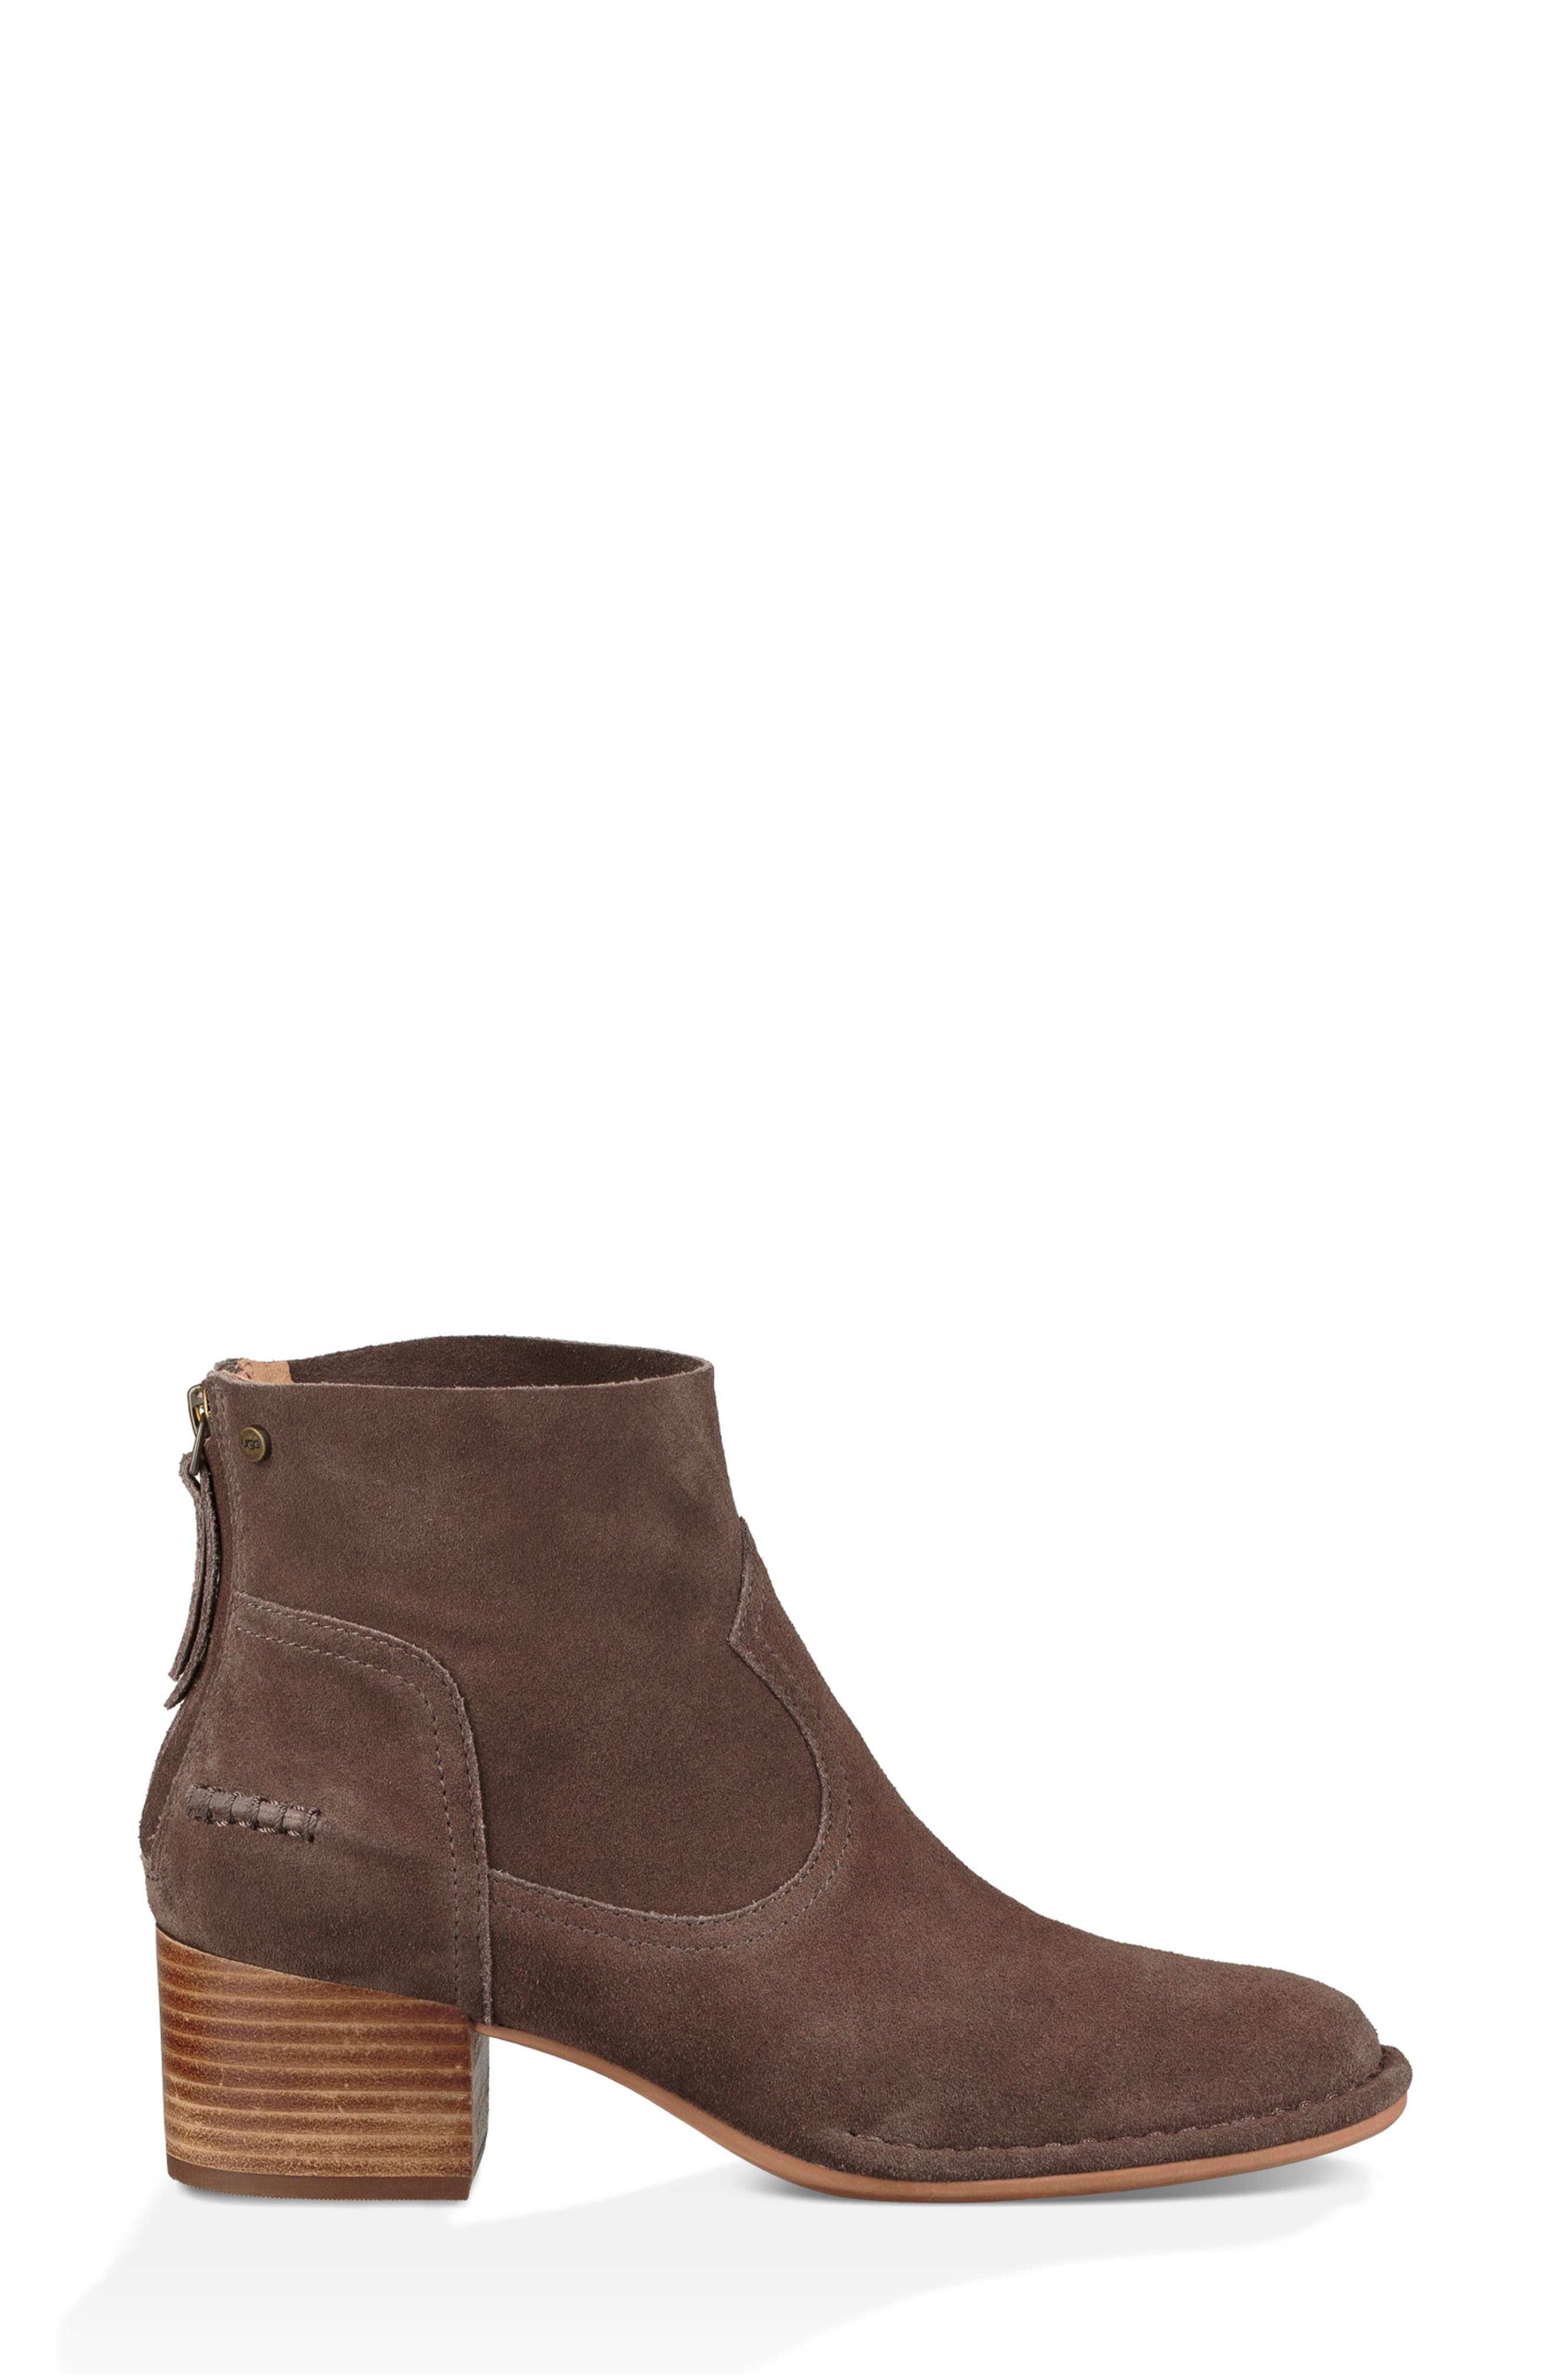 Bandera Bootie,                             Alternate thumbnail 3, color,                             MYSTERIOUS